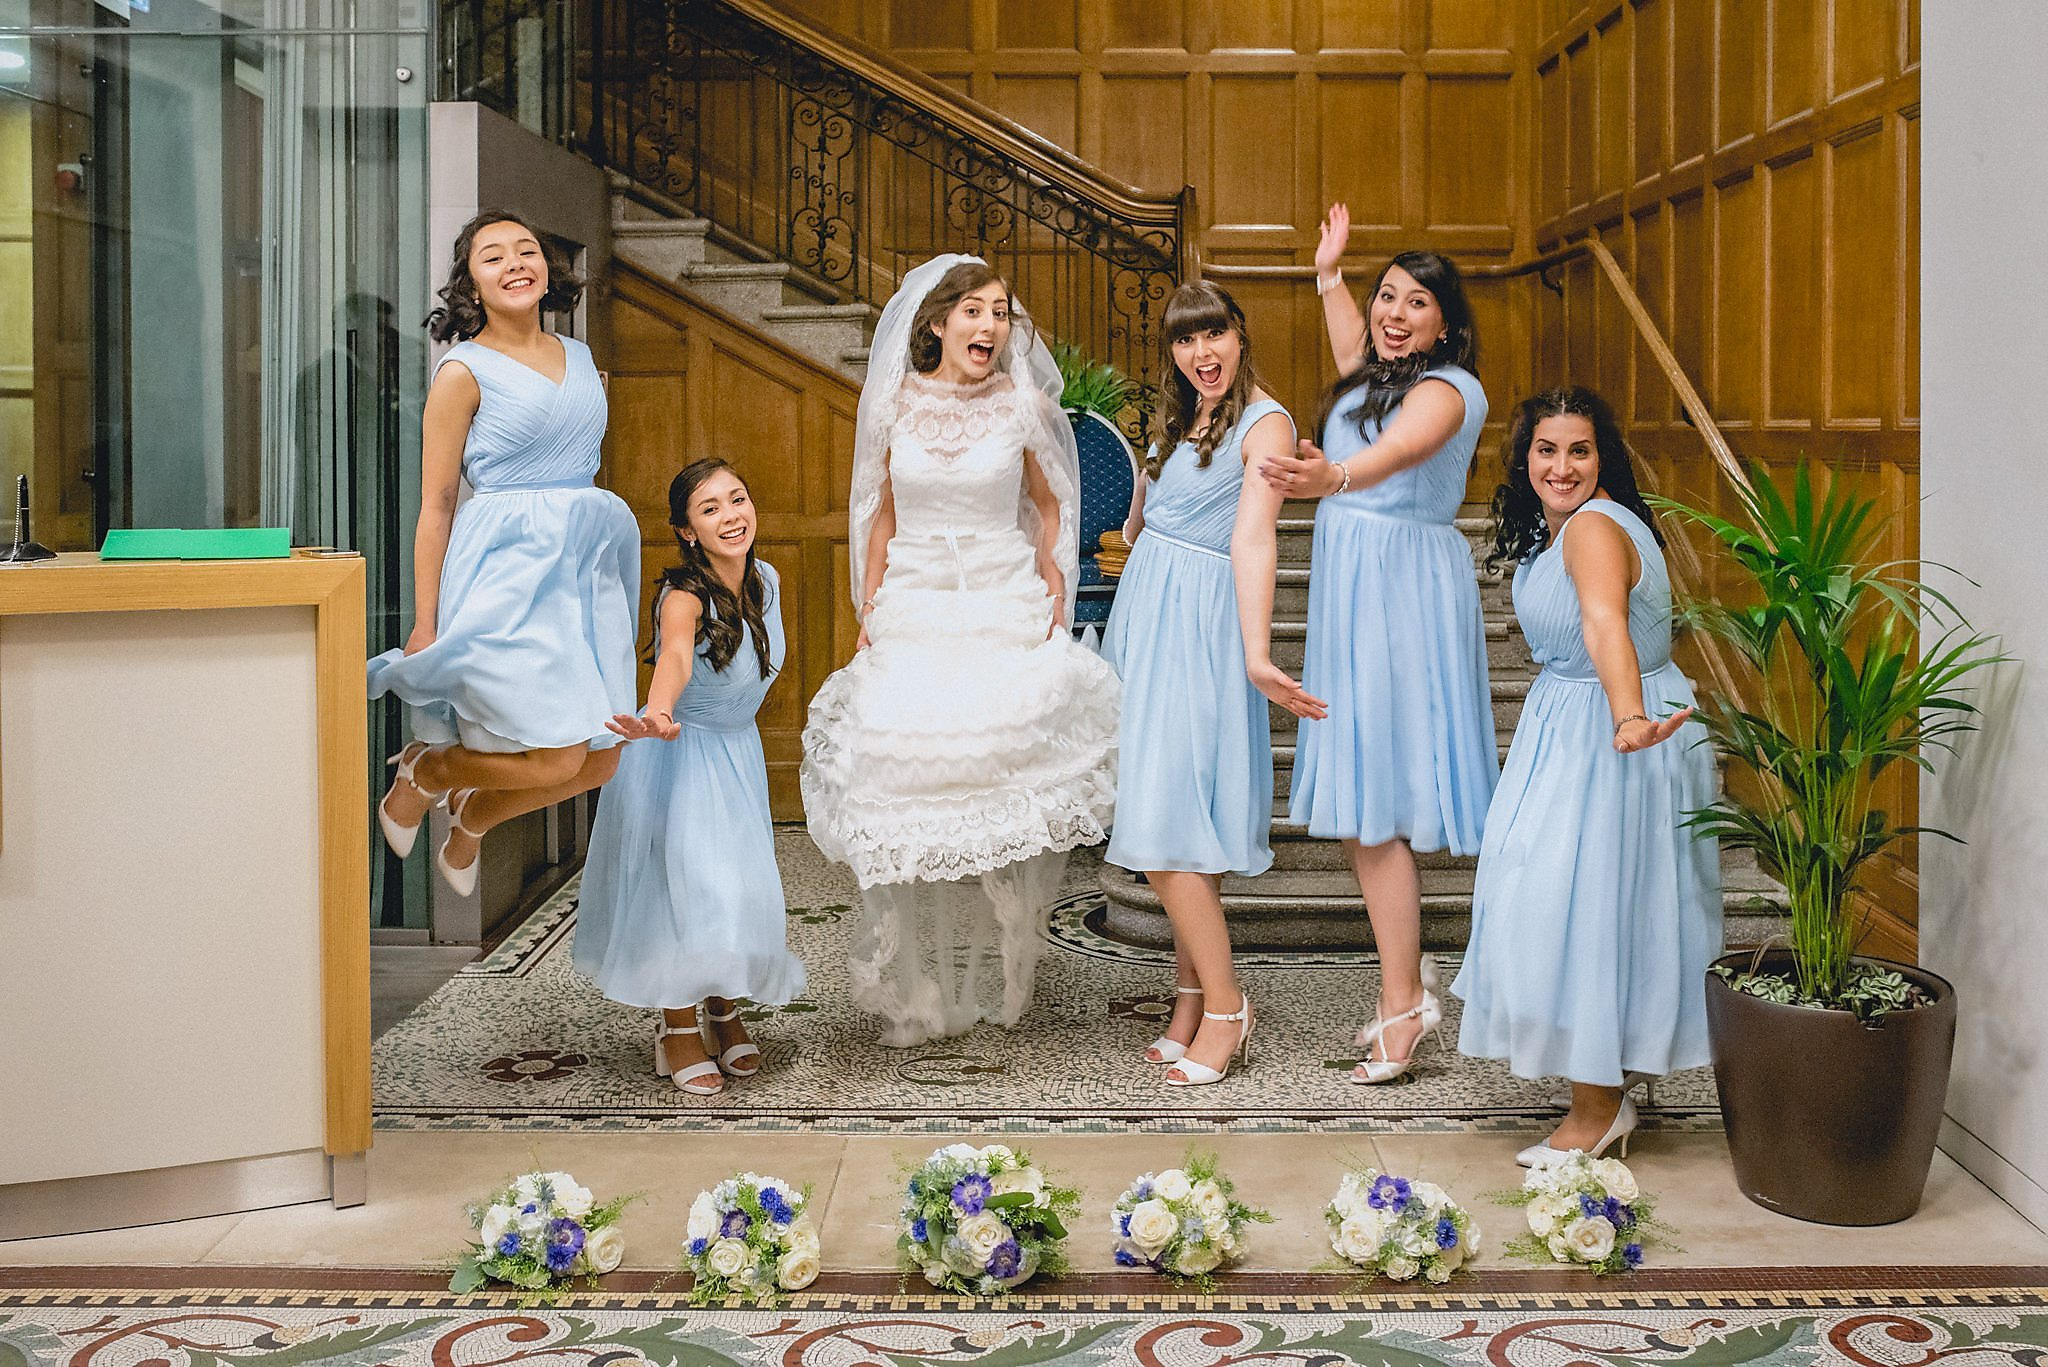 Bride Maria jumps in the air with her 5 bridesmaids, who are wearing pale blue dresses